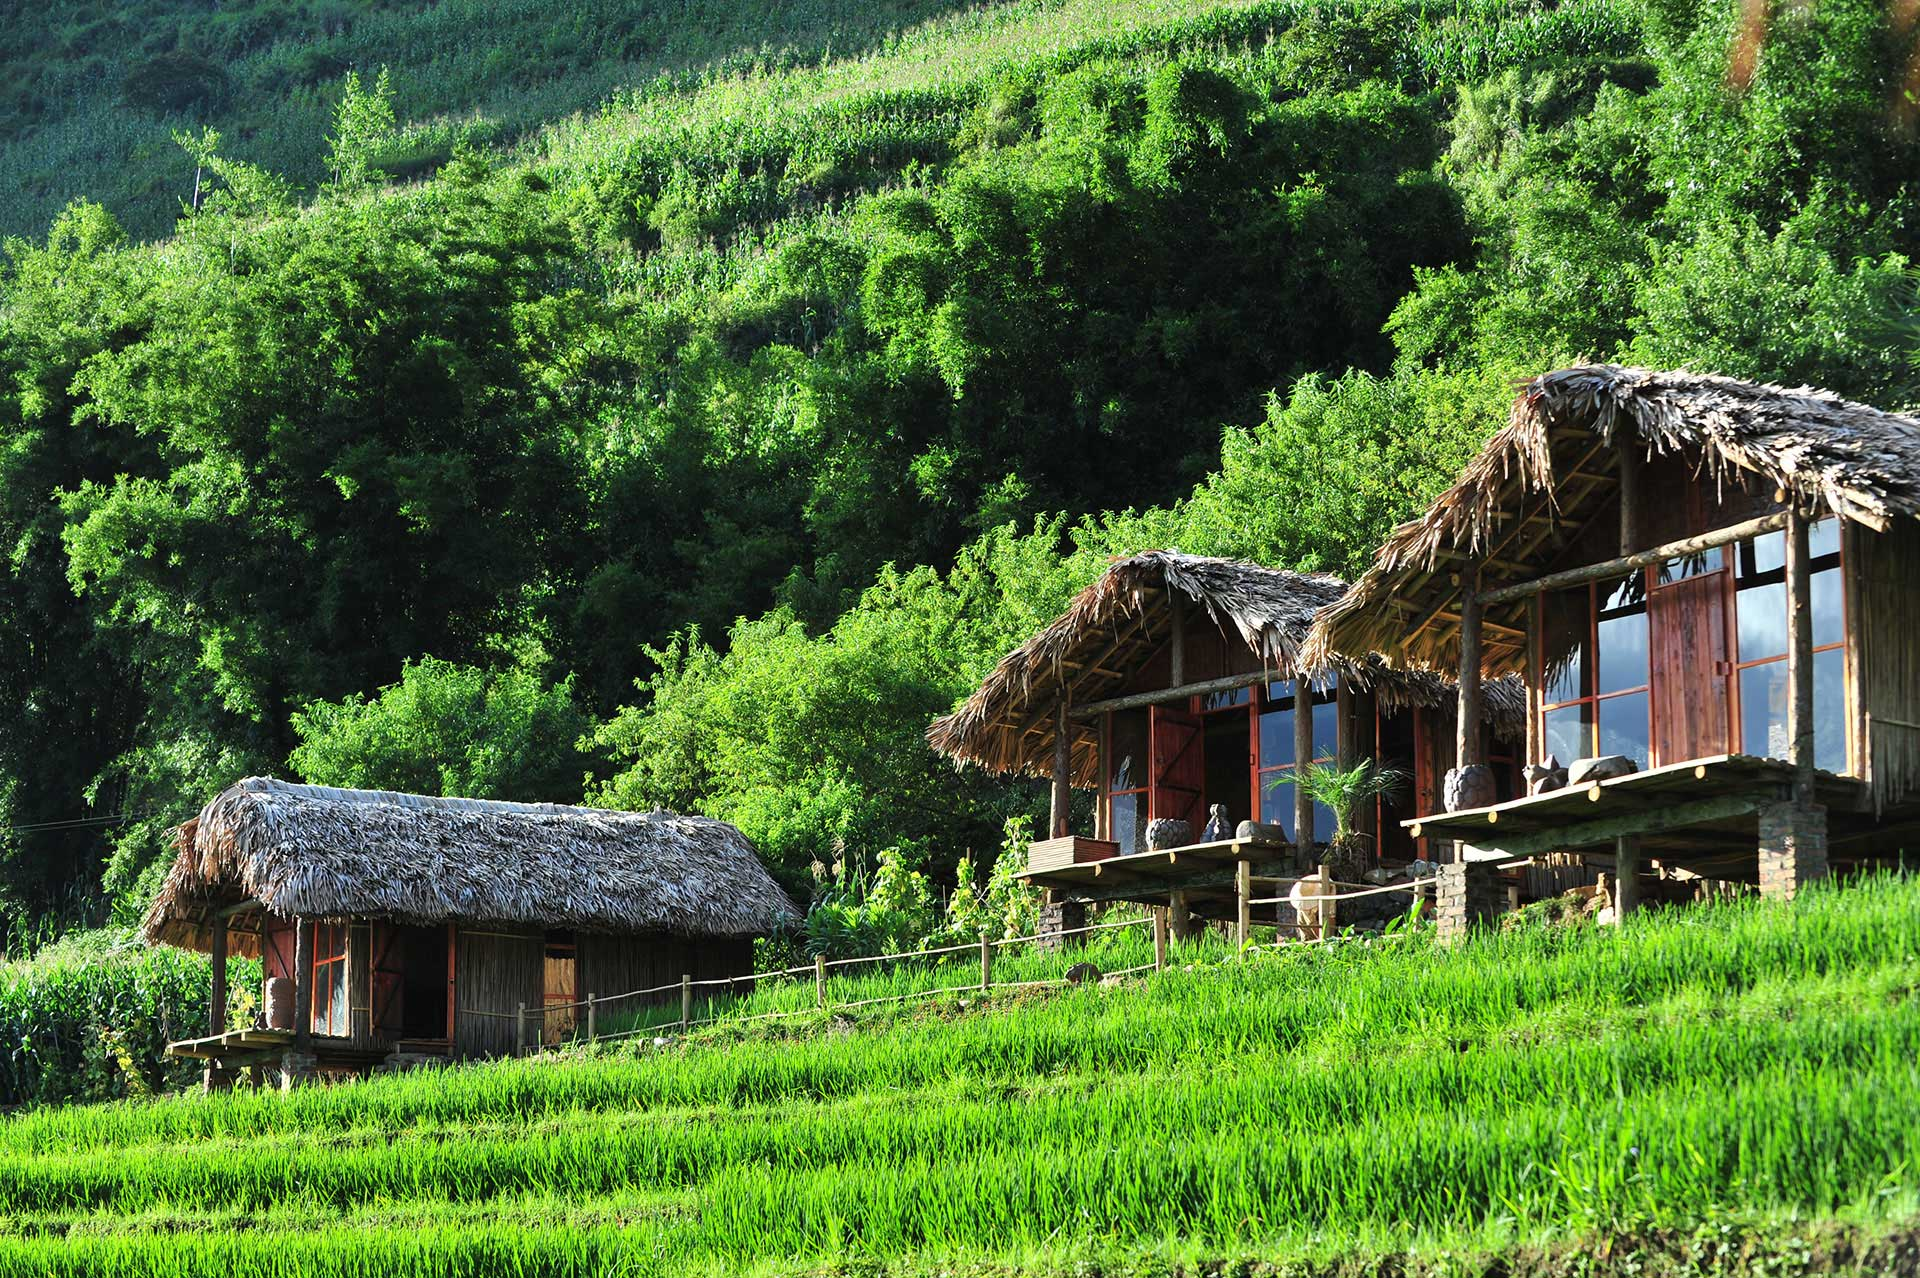 Green space around Eco Palms House in Sapa